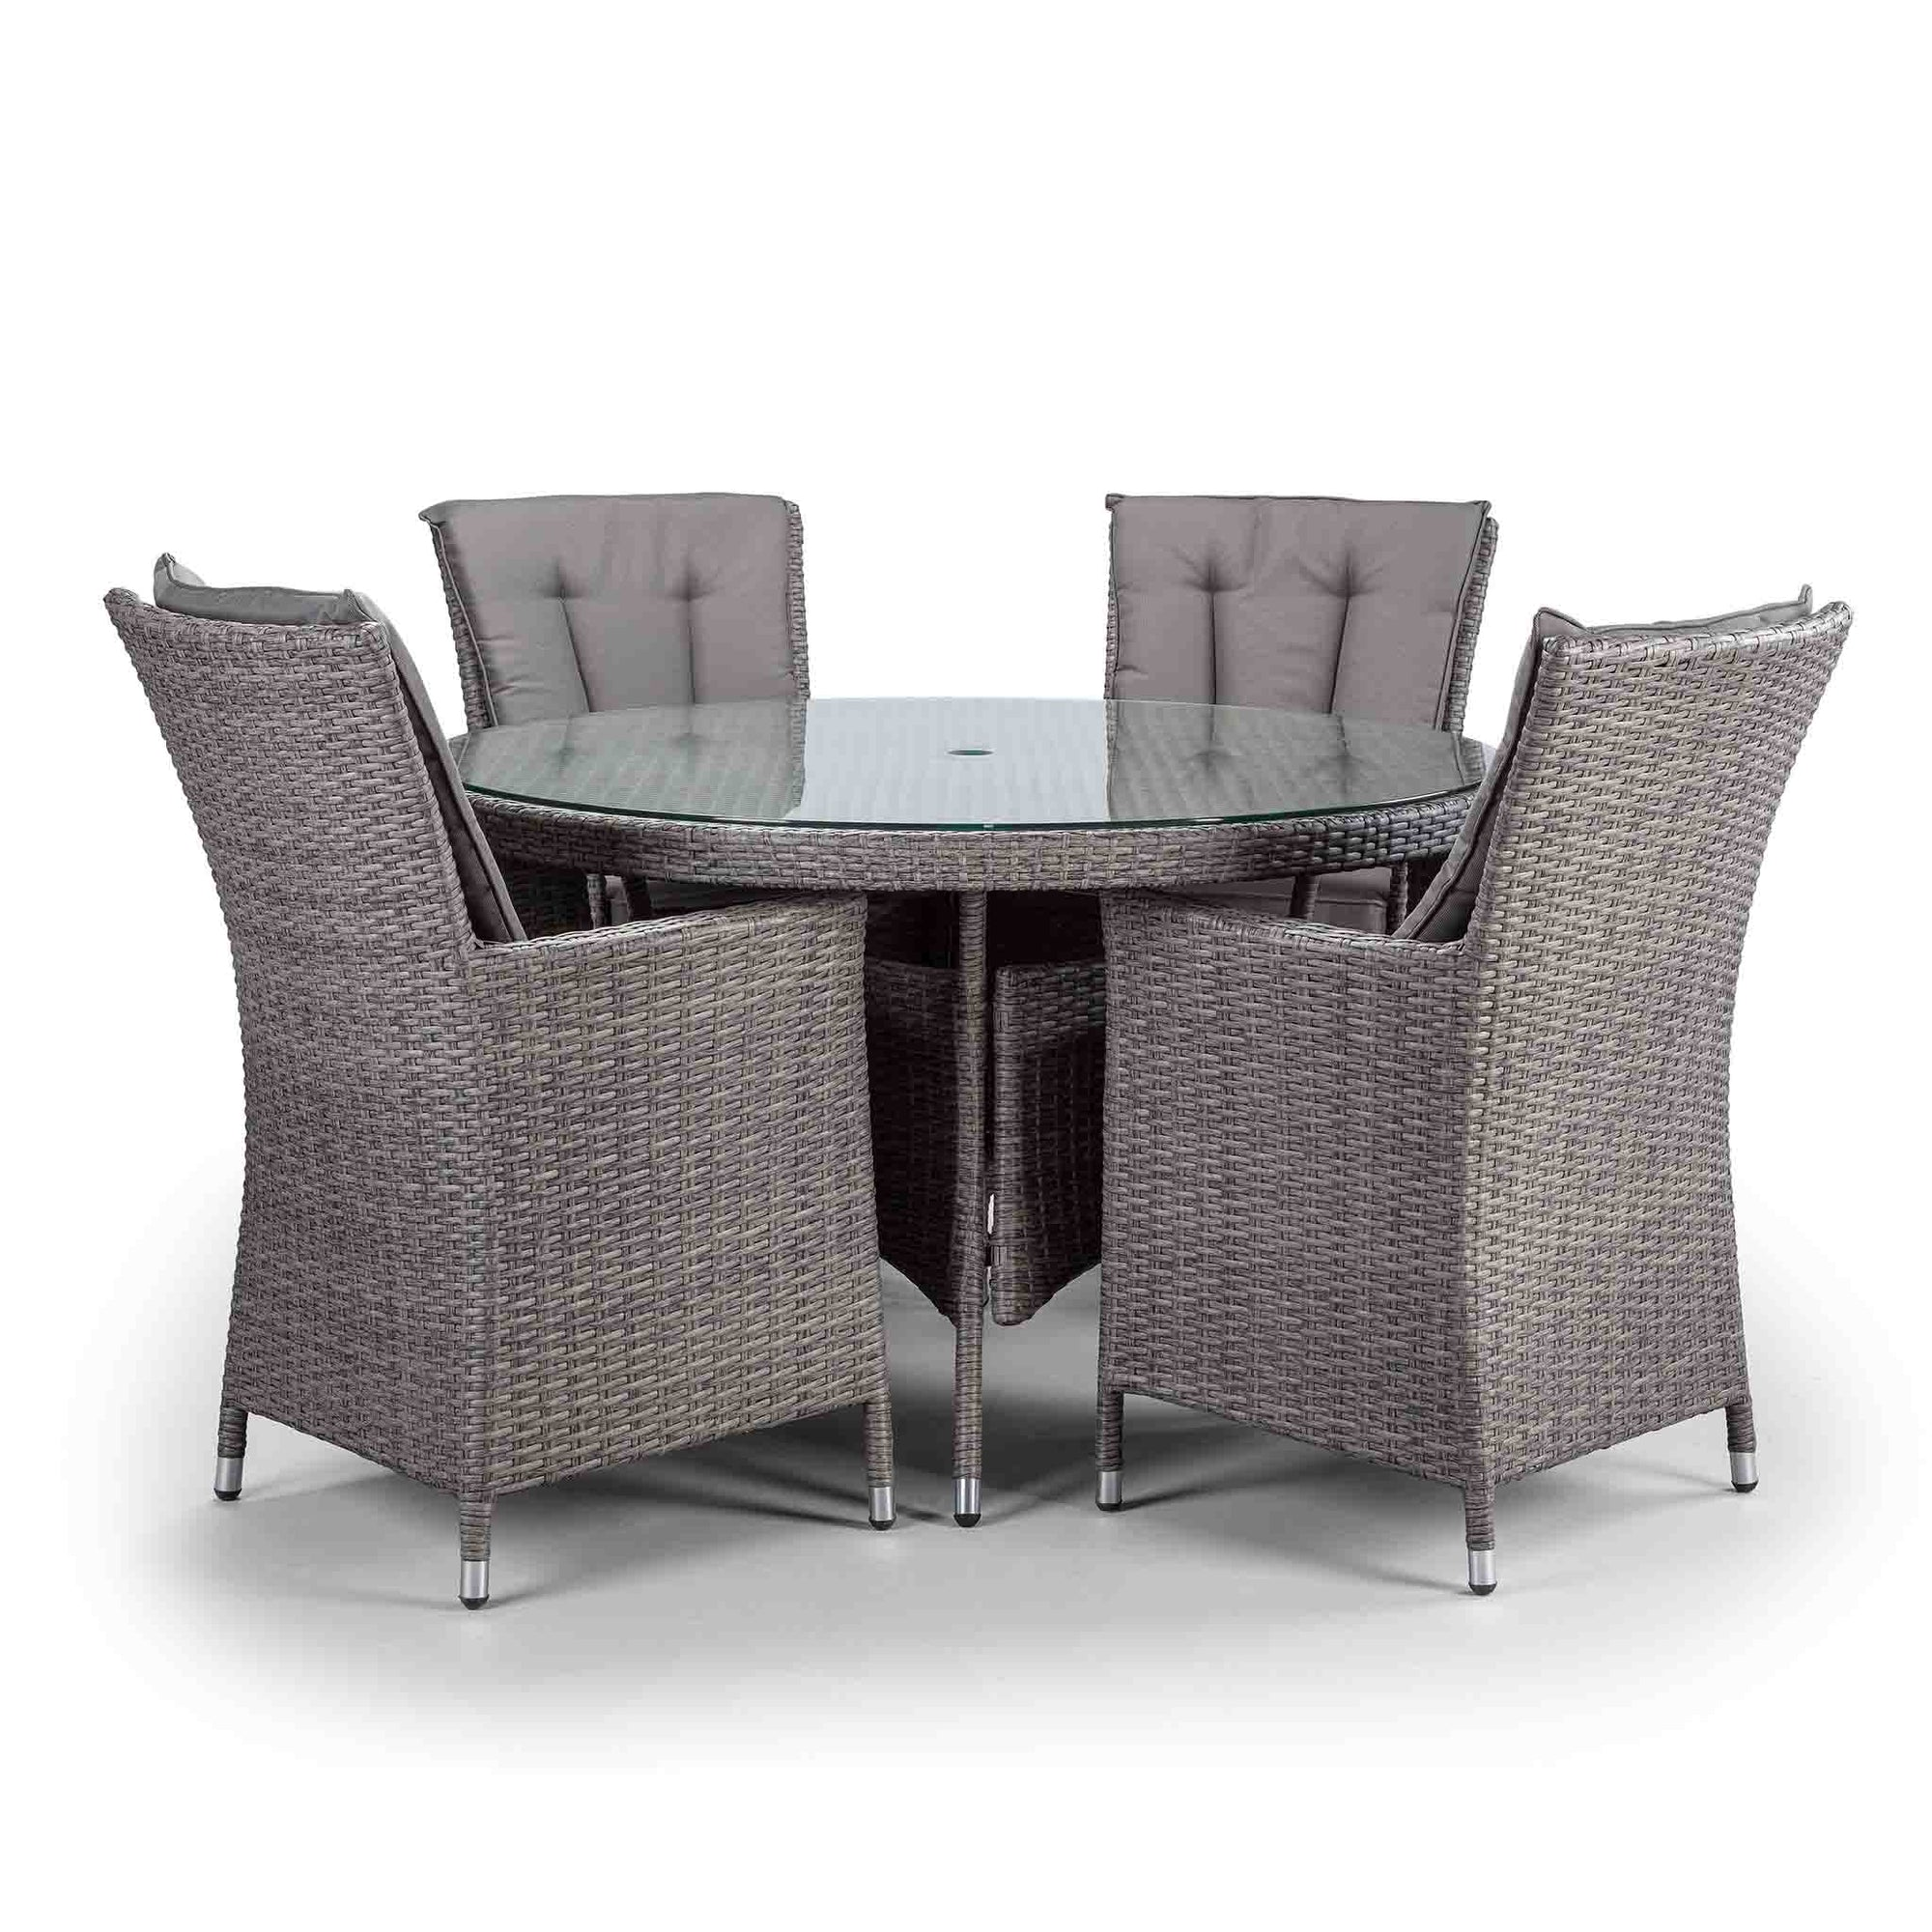 Palma 9cm Round Grey Rattan Dining Table and Chairs with Glass ...